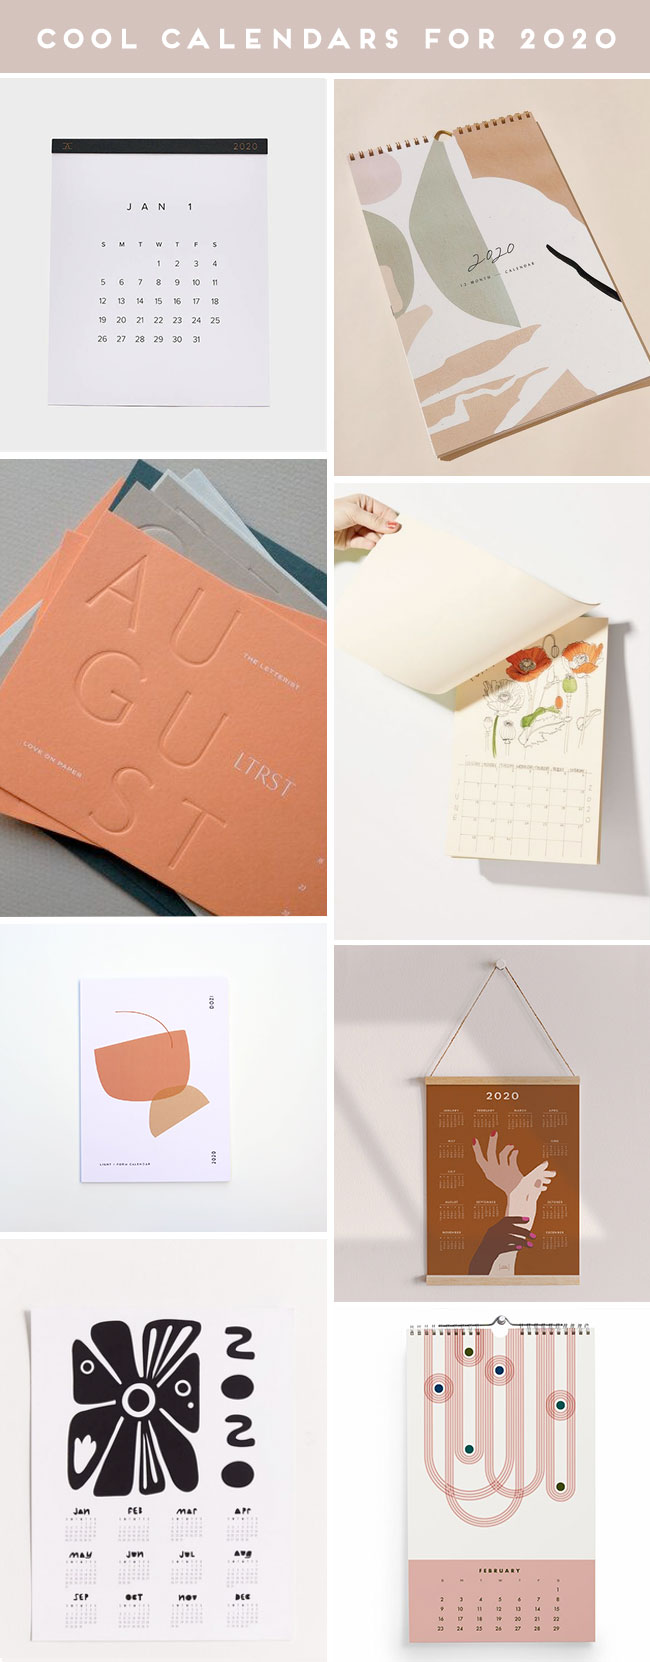 A product roundup of cute calendars for 2020